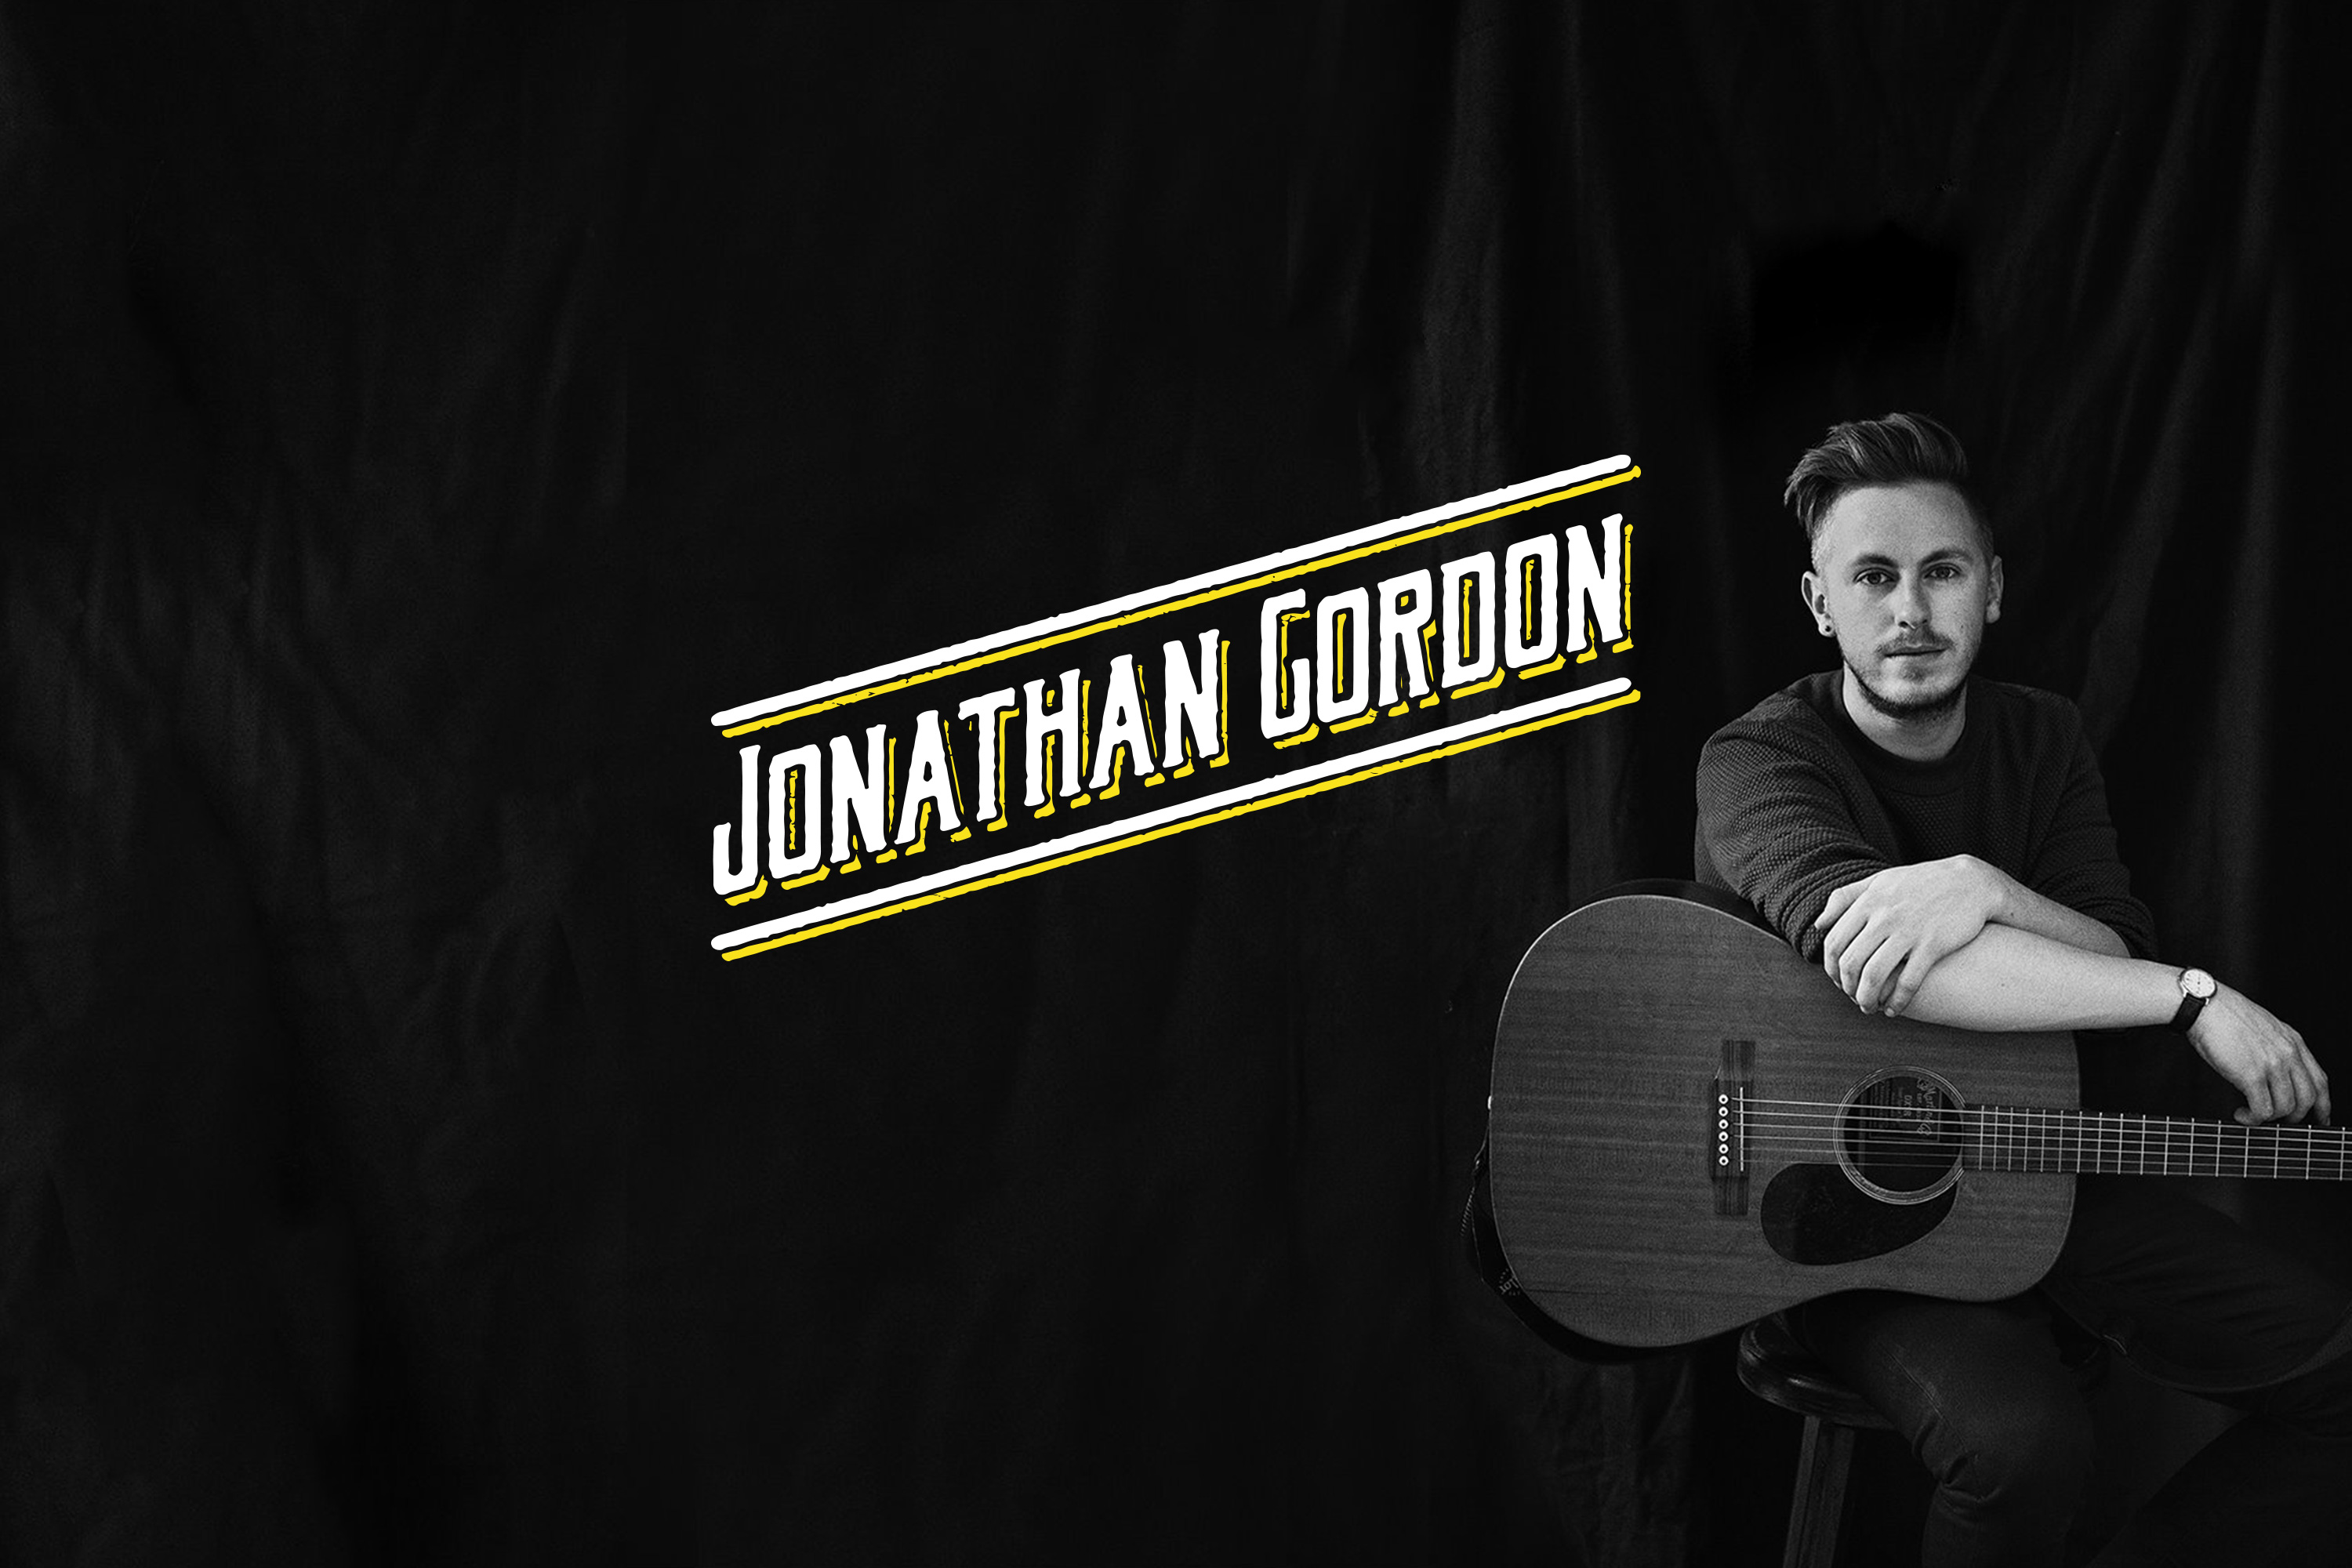 Jonathan Gordon